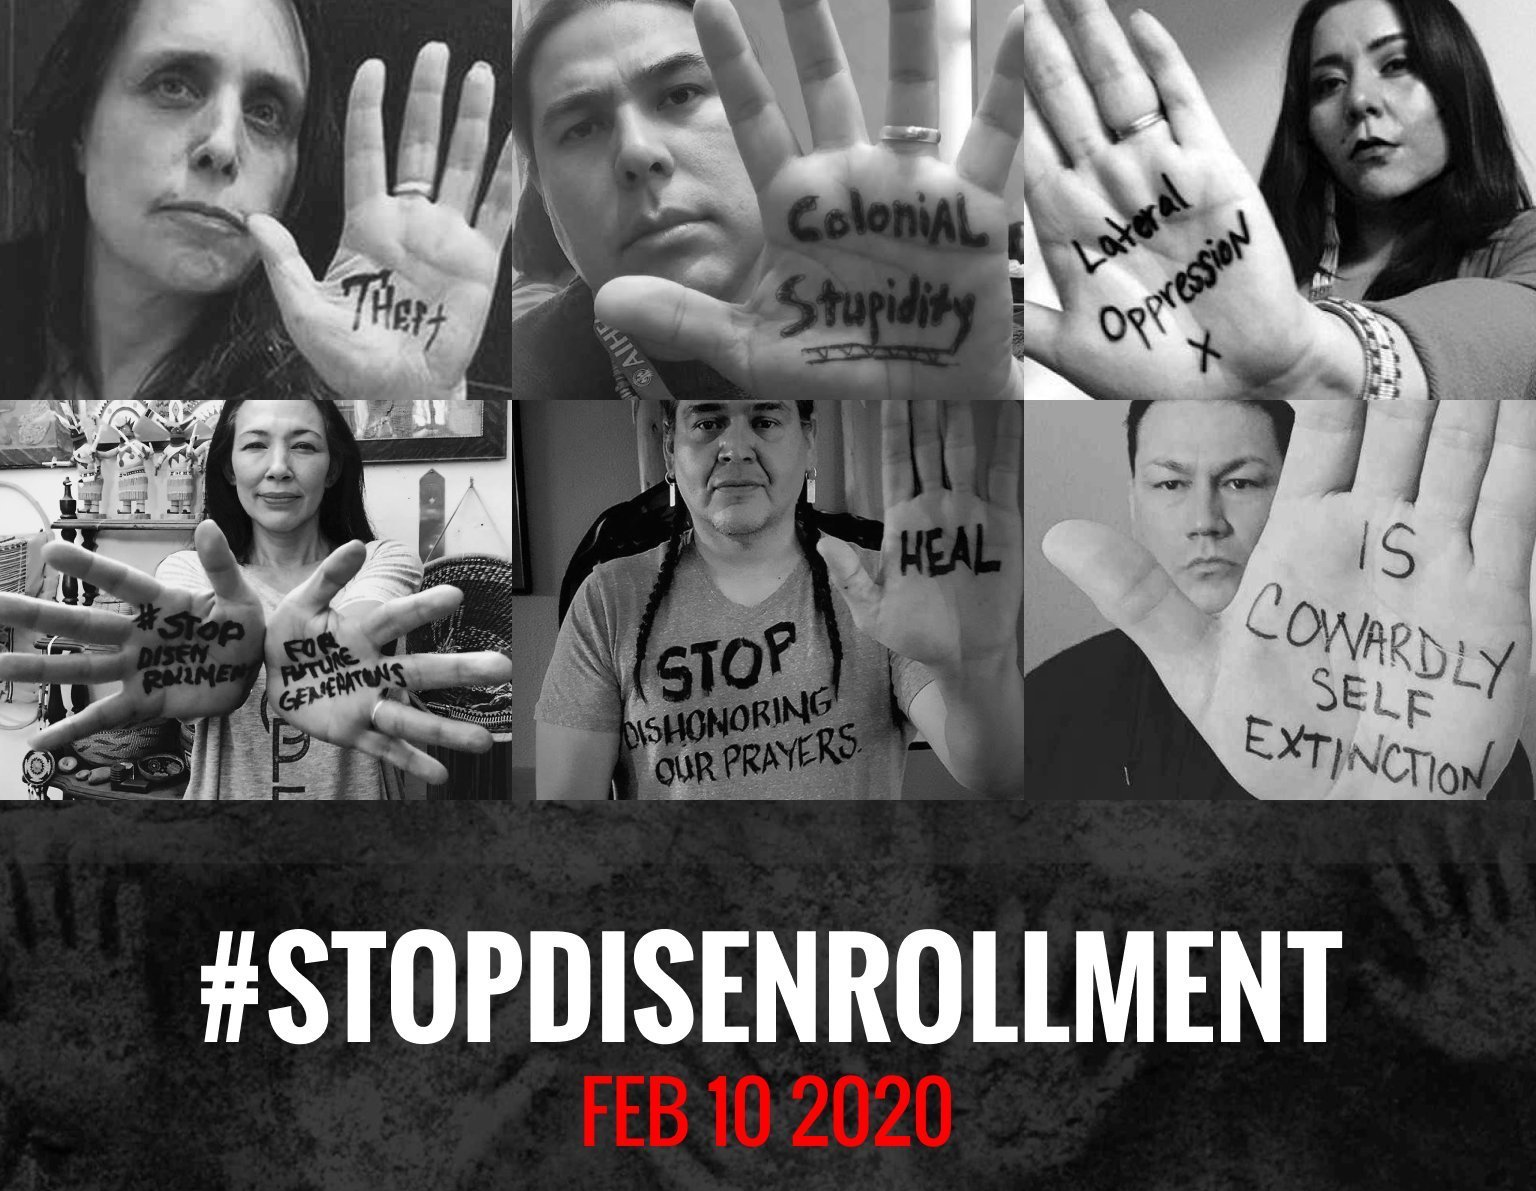 Gabe Galanda: The United States must help stop disenrollment